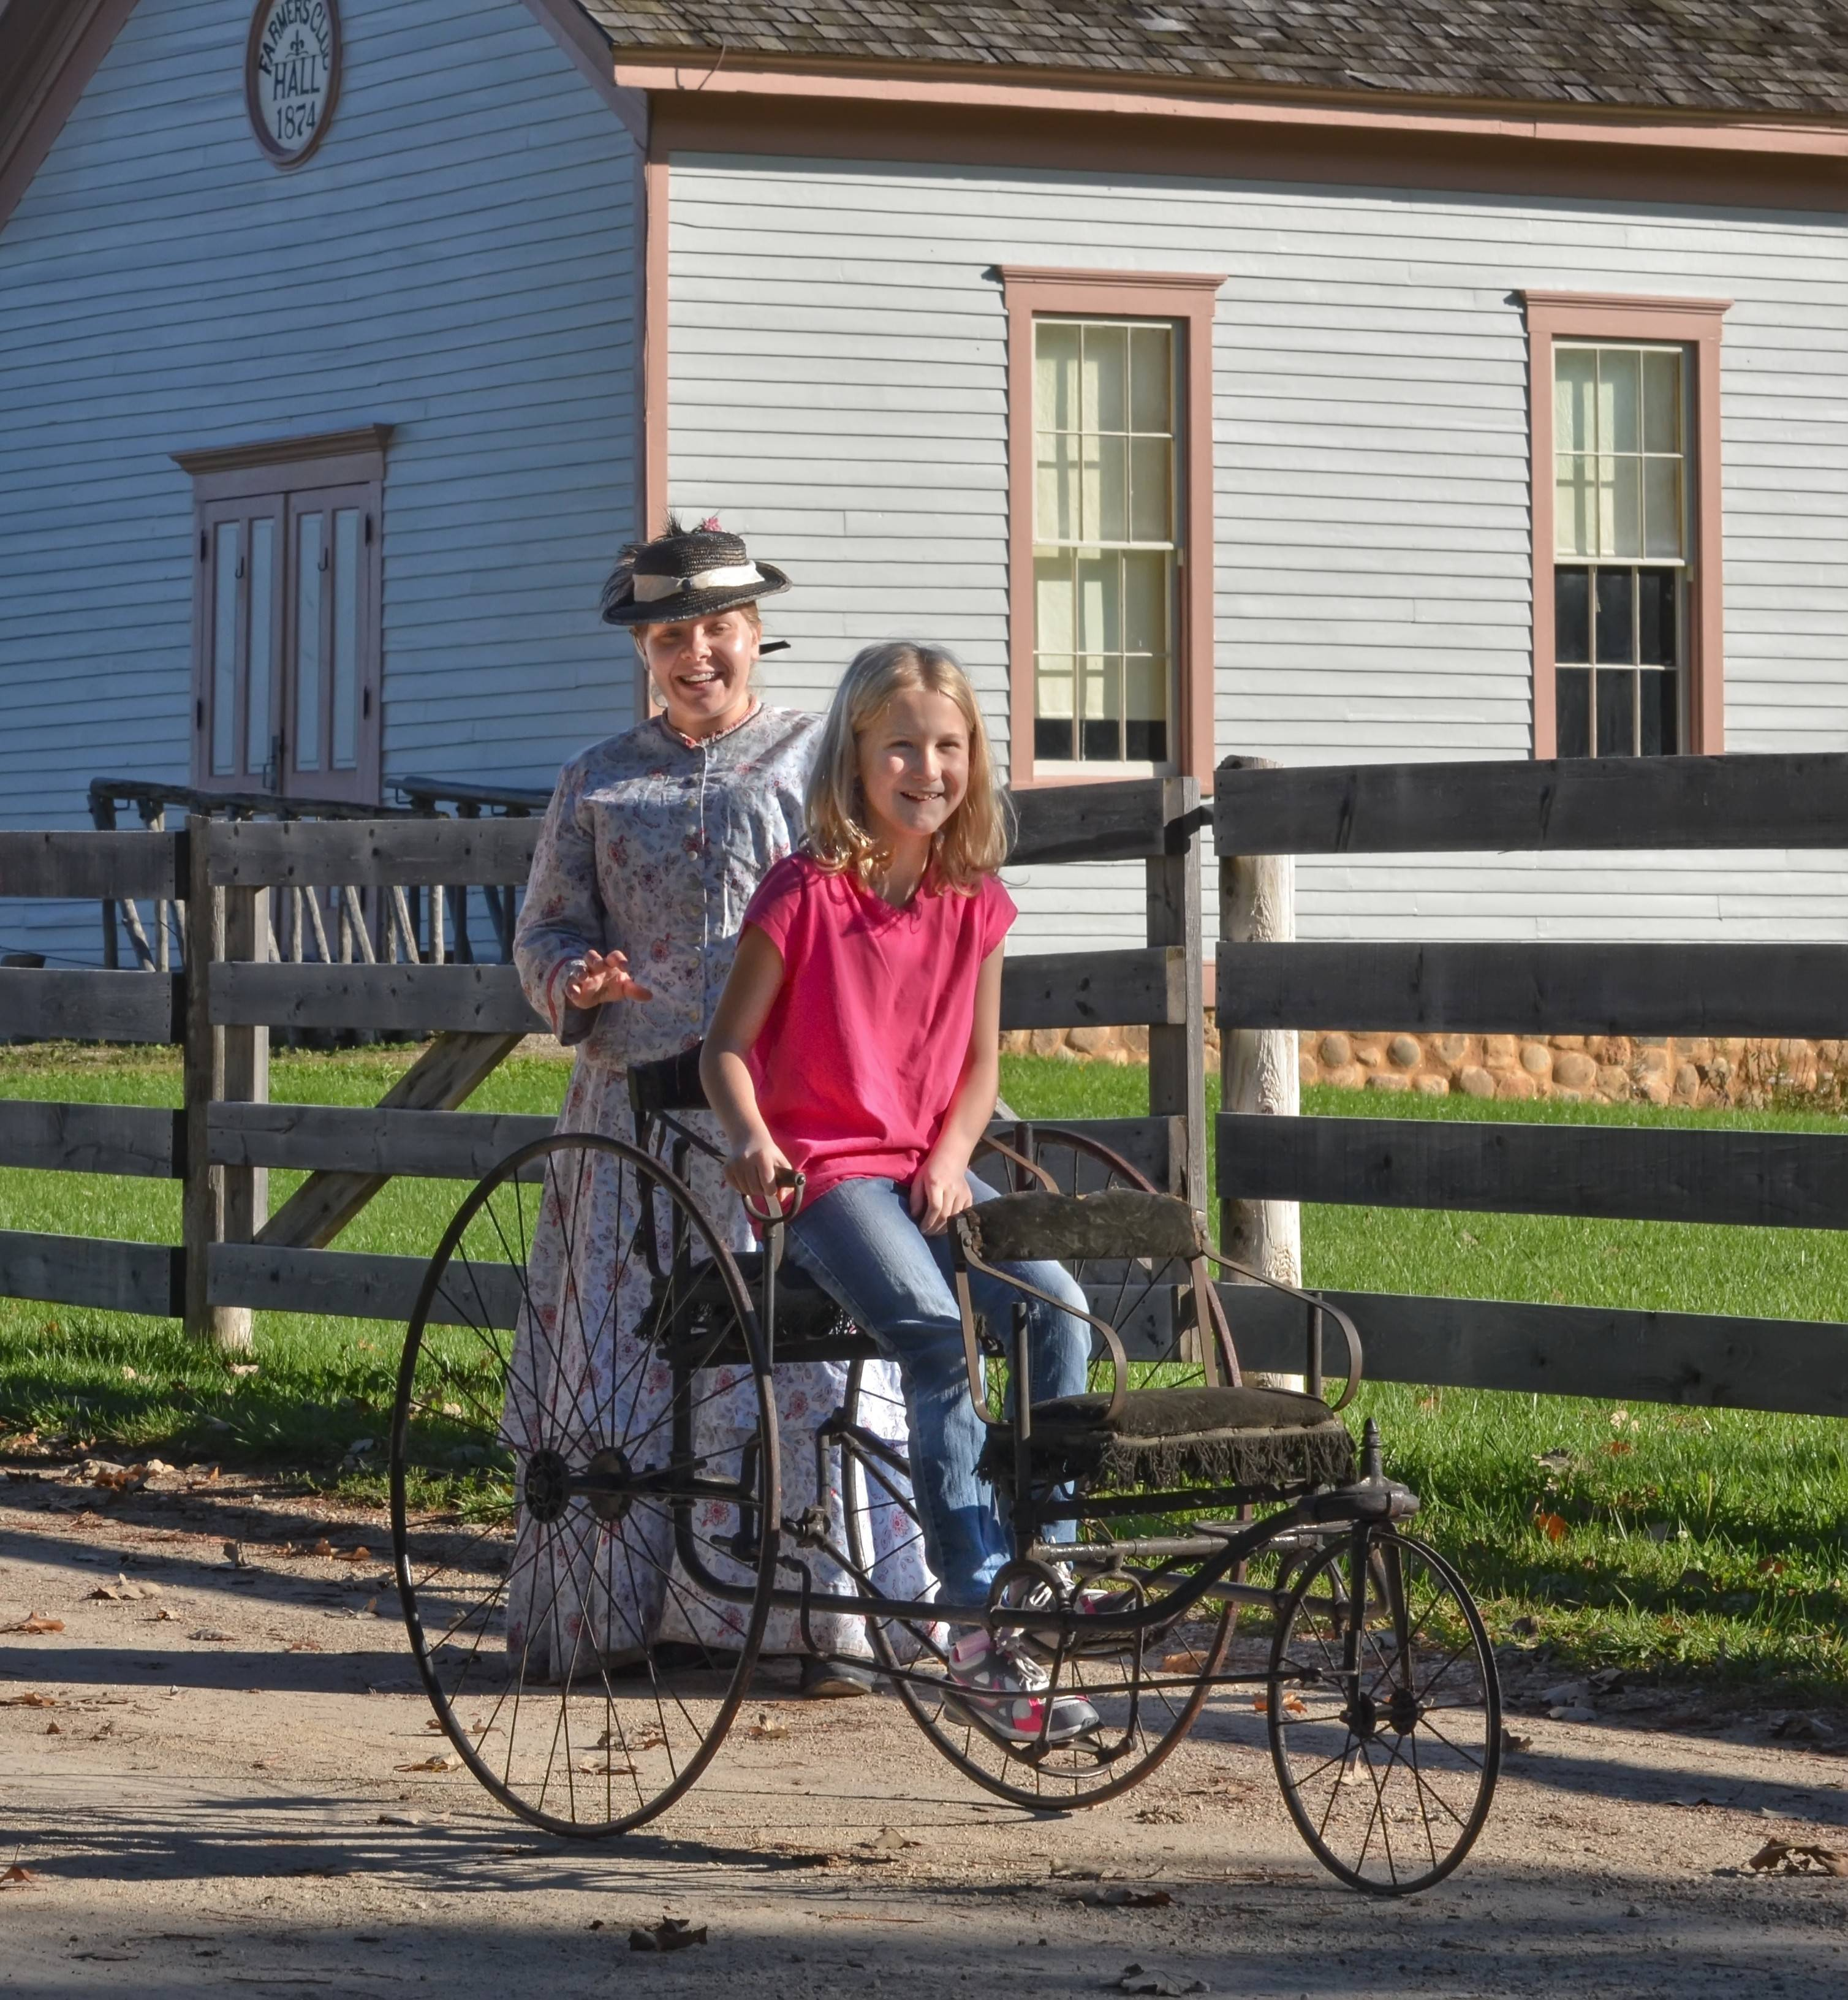 The new Catch Wheel Fever! Experience opens Saturday, June 14, at Old World Wisconsin in Eagle, Wisconsin.